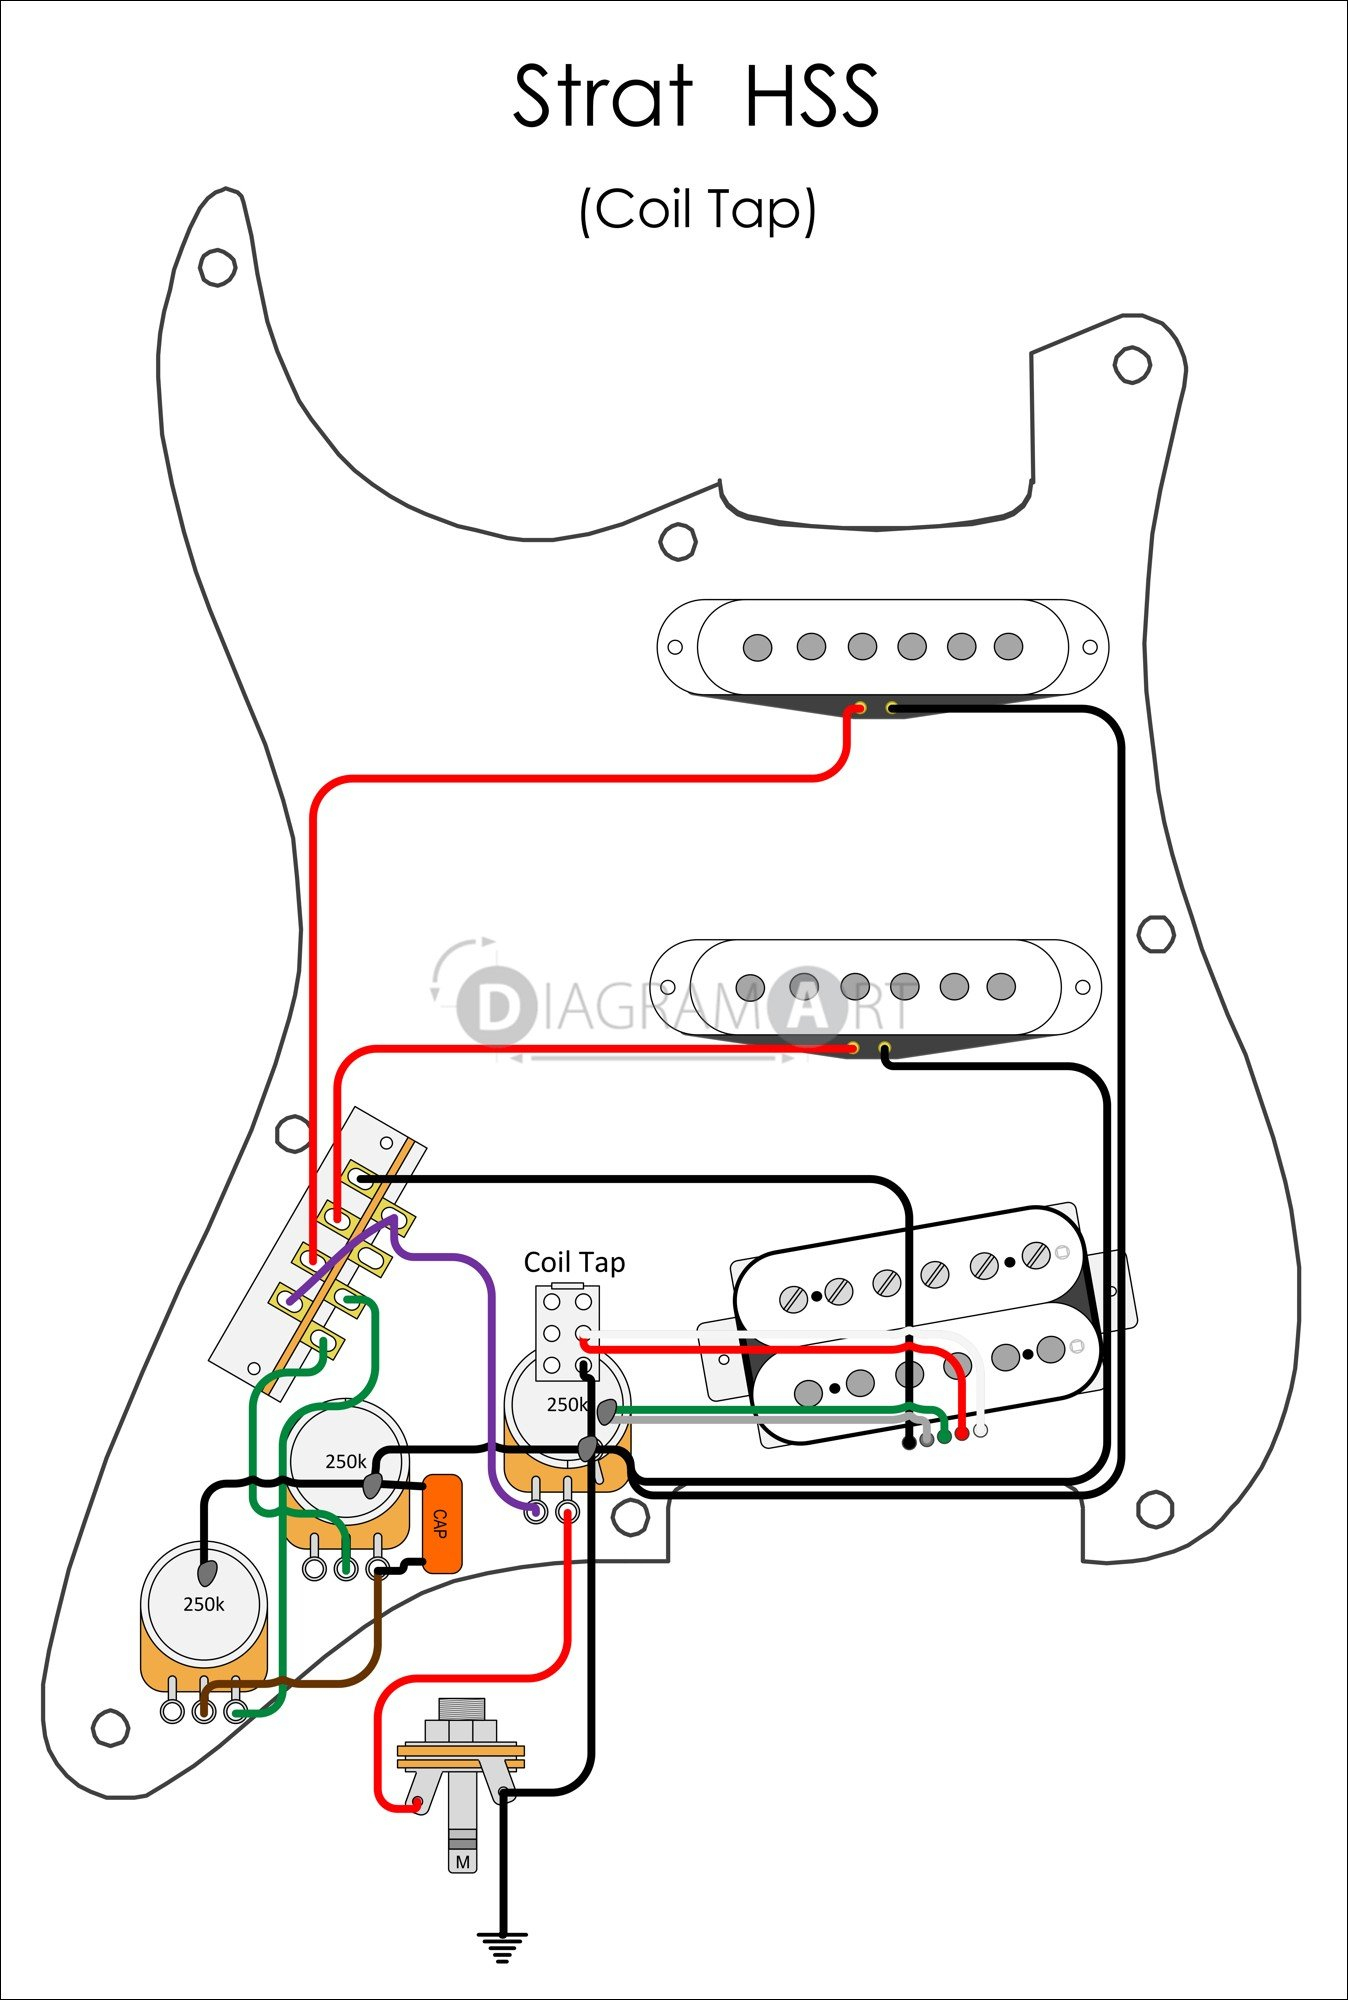 Hss With Coil Split Wiring Diagram - Wiring Block Diagram - Hss Wiring Diagram Coil Split